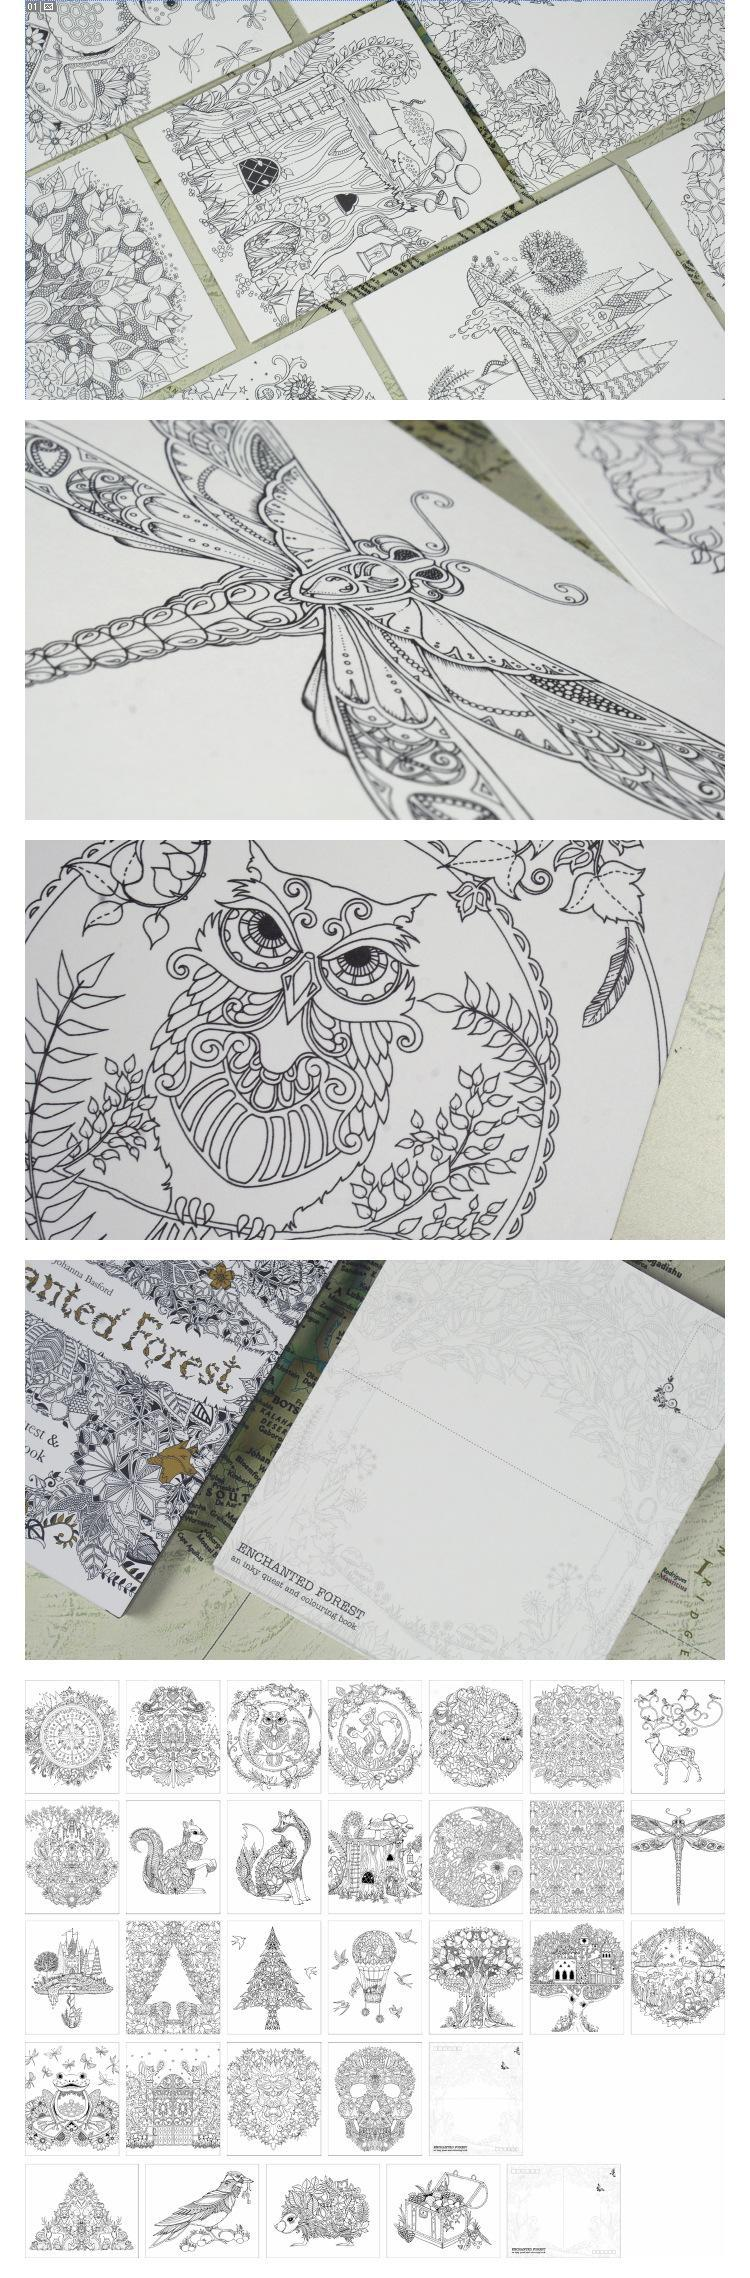 The enchanted forest coloring book uk - Enchanted Forest And Secret Garden An Inky Treasure Hunt Colouring Book Adult Kids Creative Therapy Coloring Drawing Books Adhesive Bind